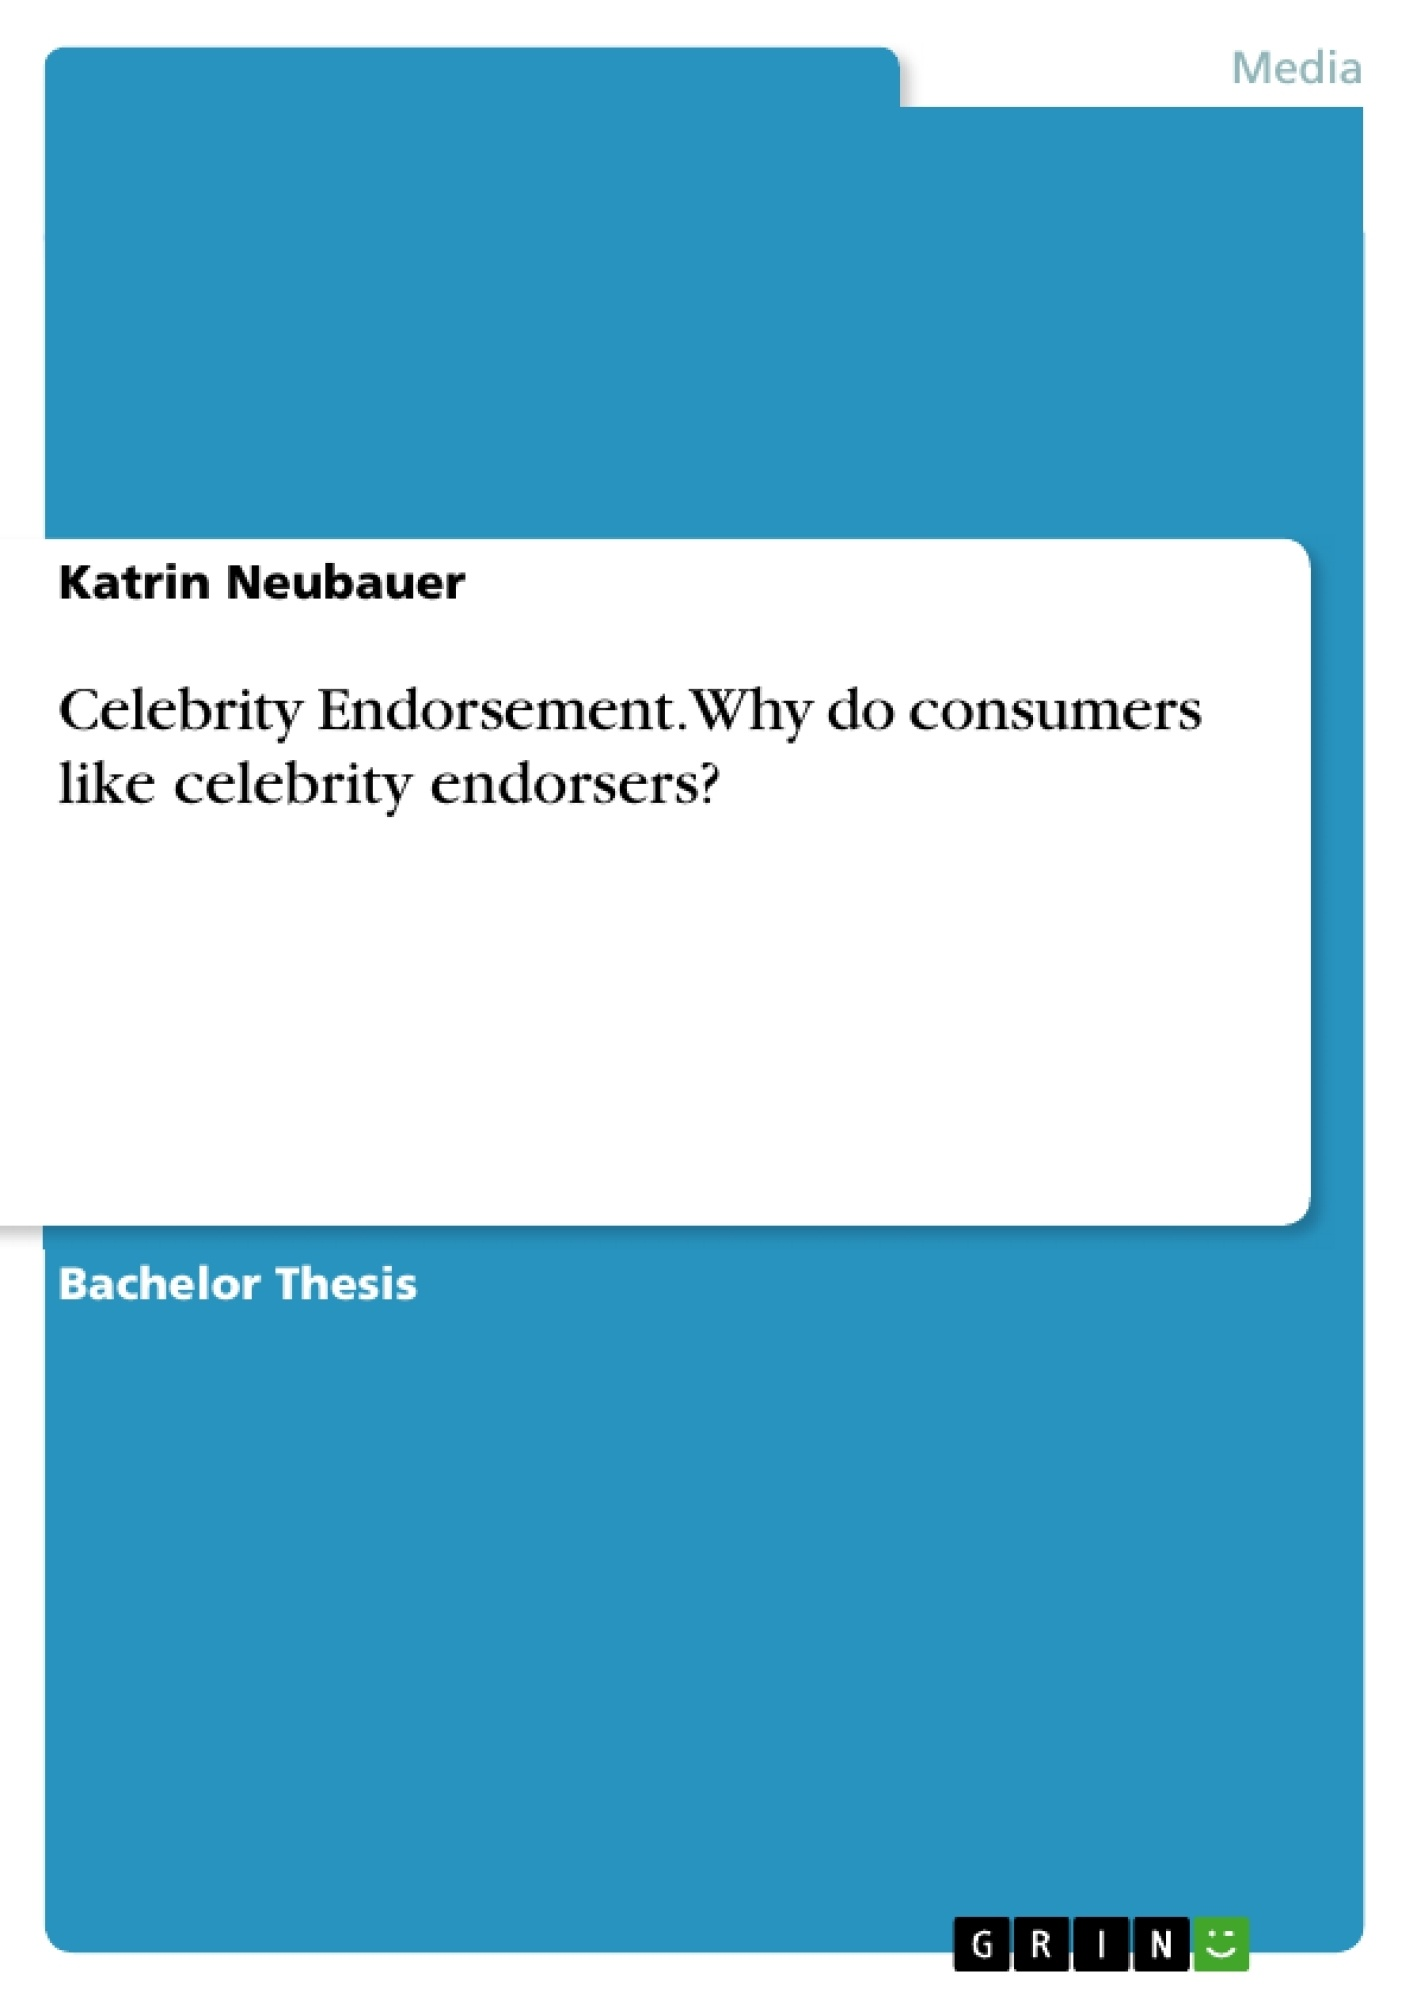 Title: Celebrity Endorsement. Why do consumers like celebrity endorsers?